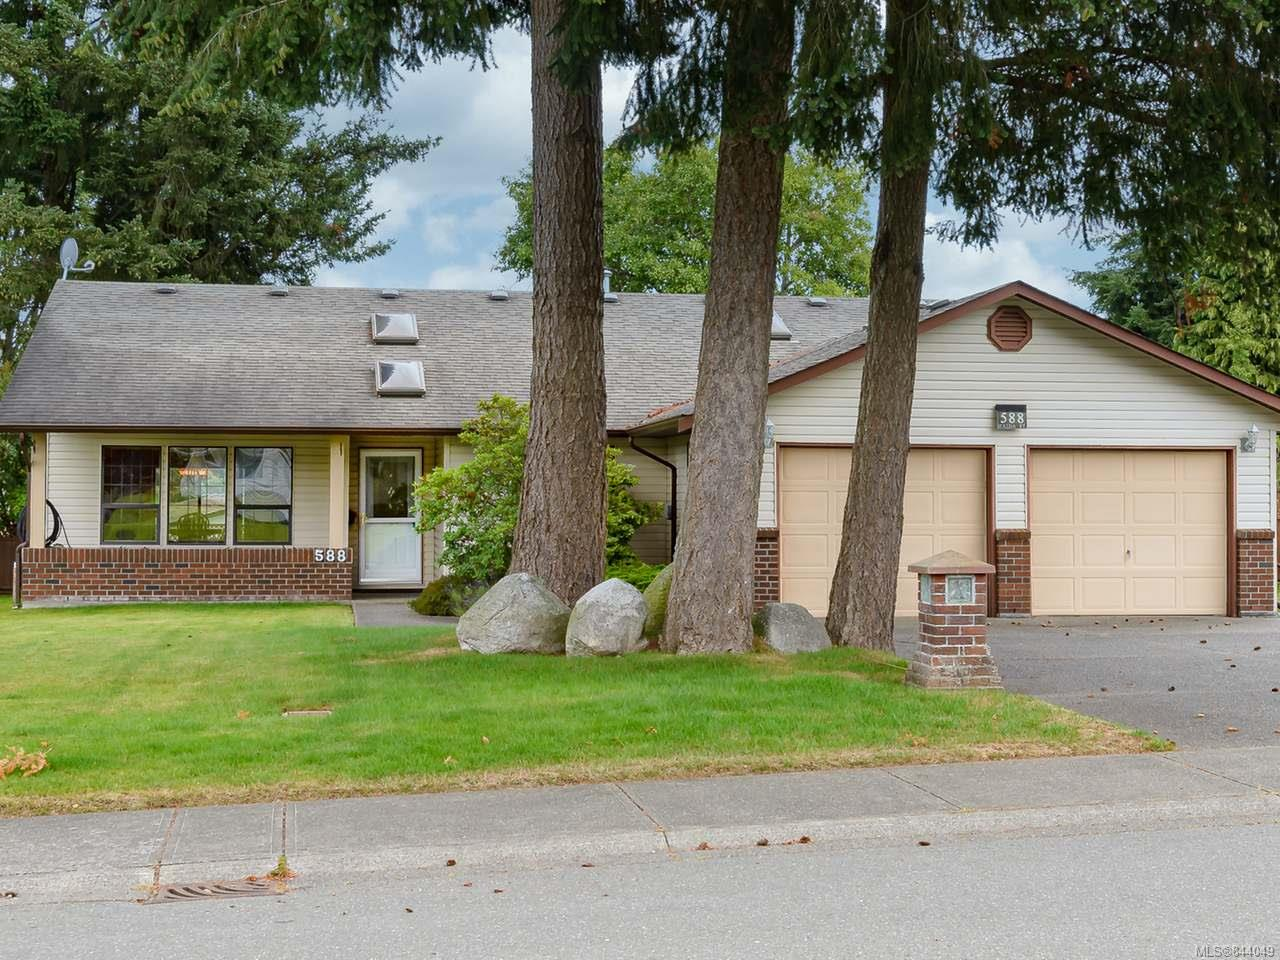 FEATURED LISTING: 588 Haida St COMOX